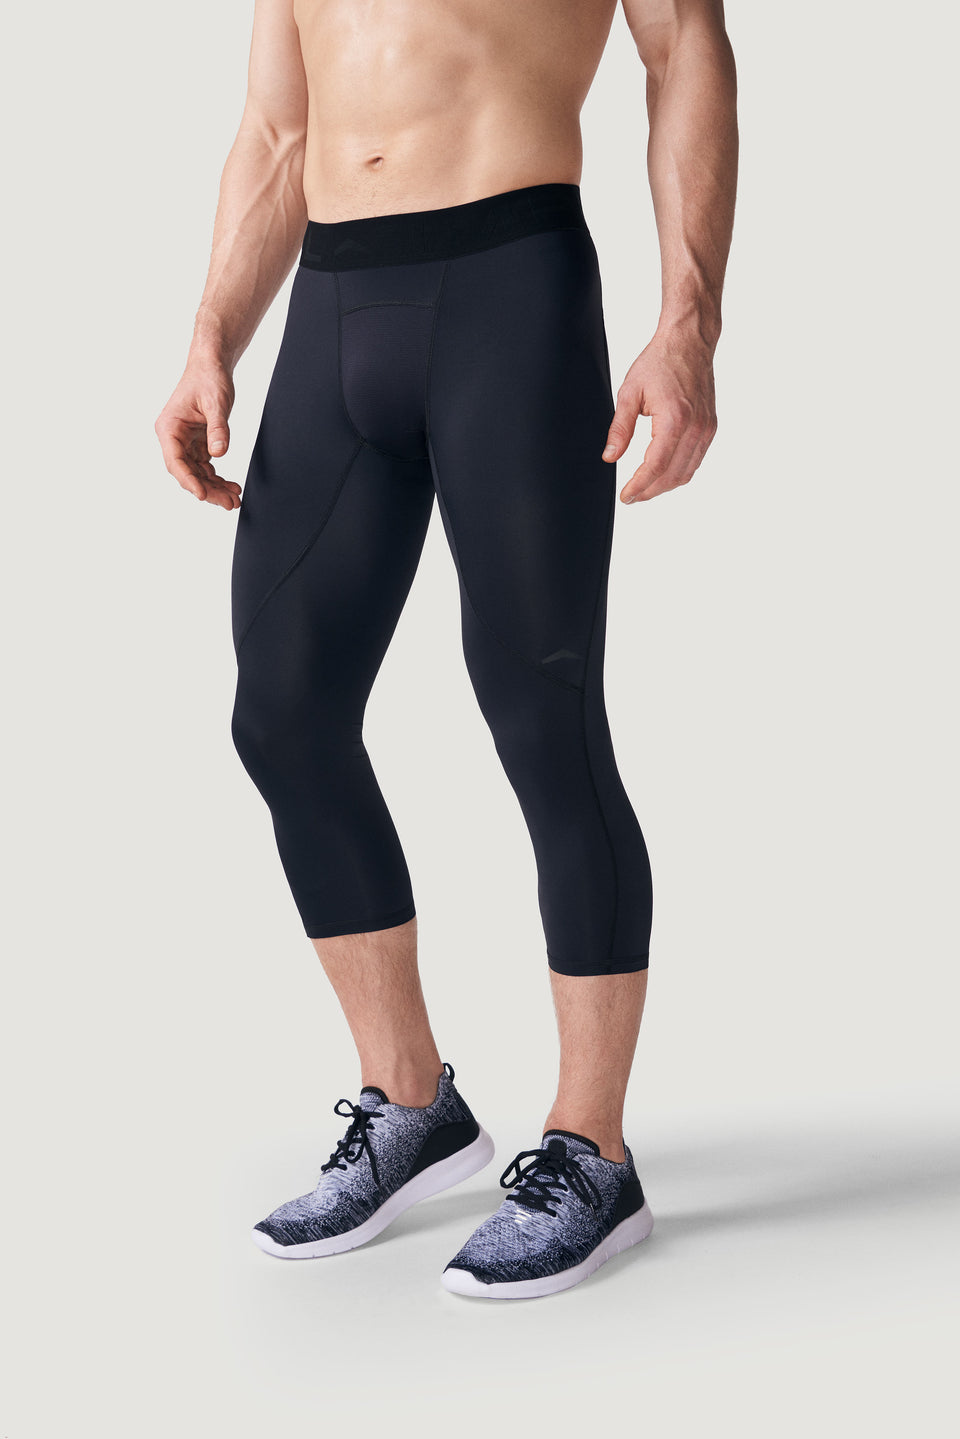 TMPL Men's Alpha DRIVE 3/4 Compression Pant